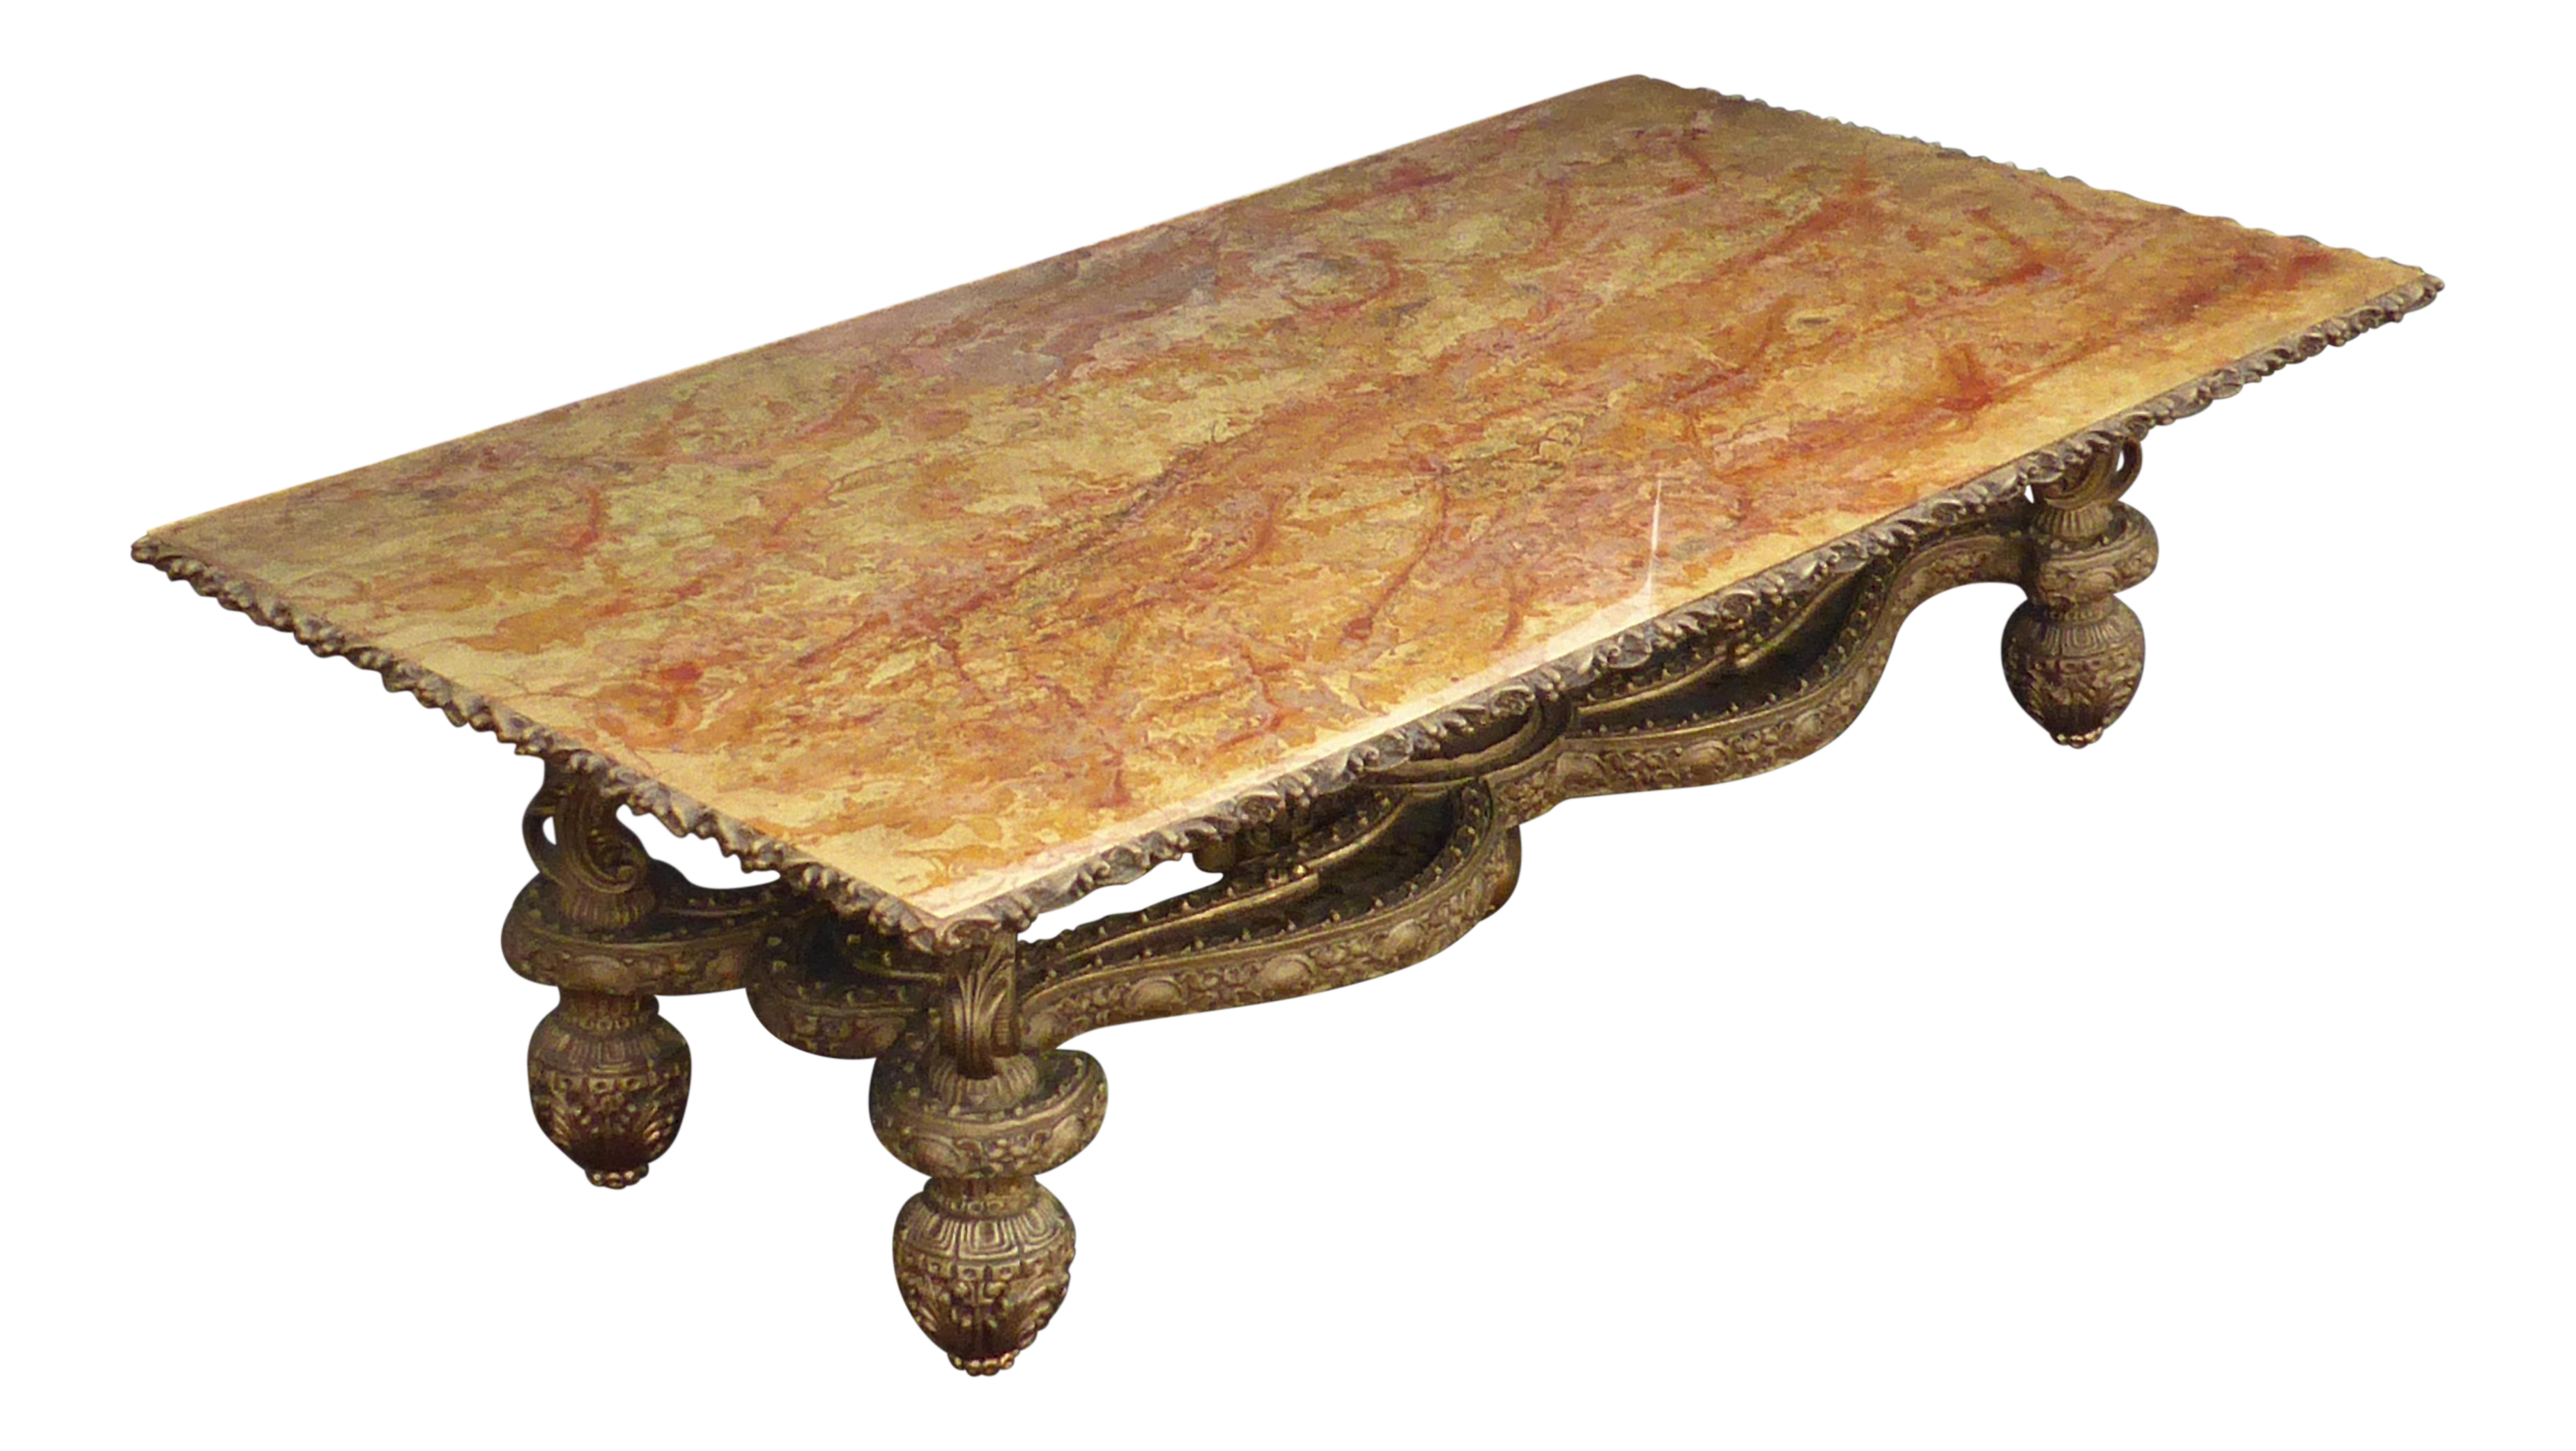 Large Vintage Hollywood Regency Gold Faux Marble Top Coffee Table